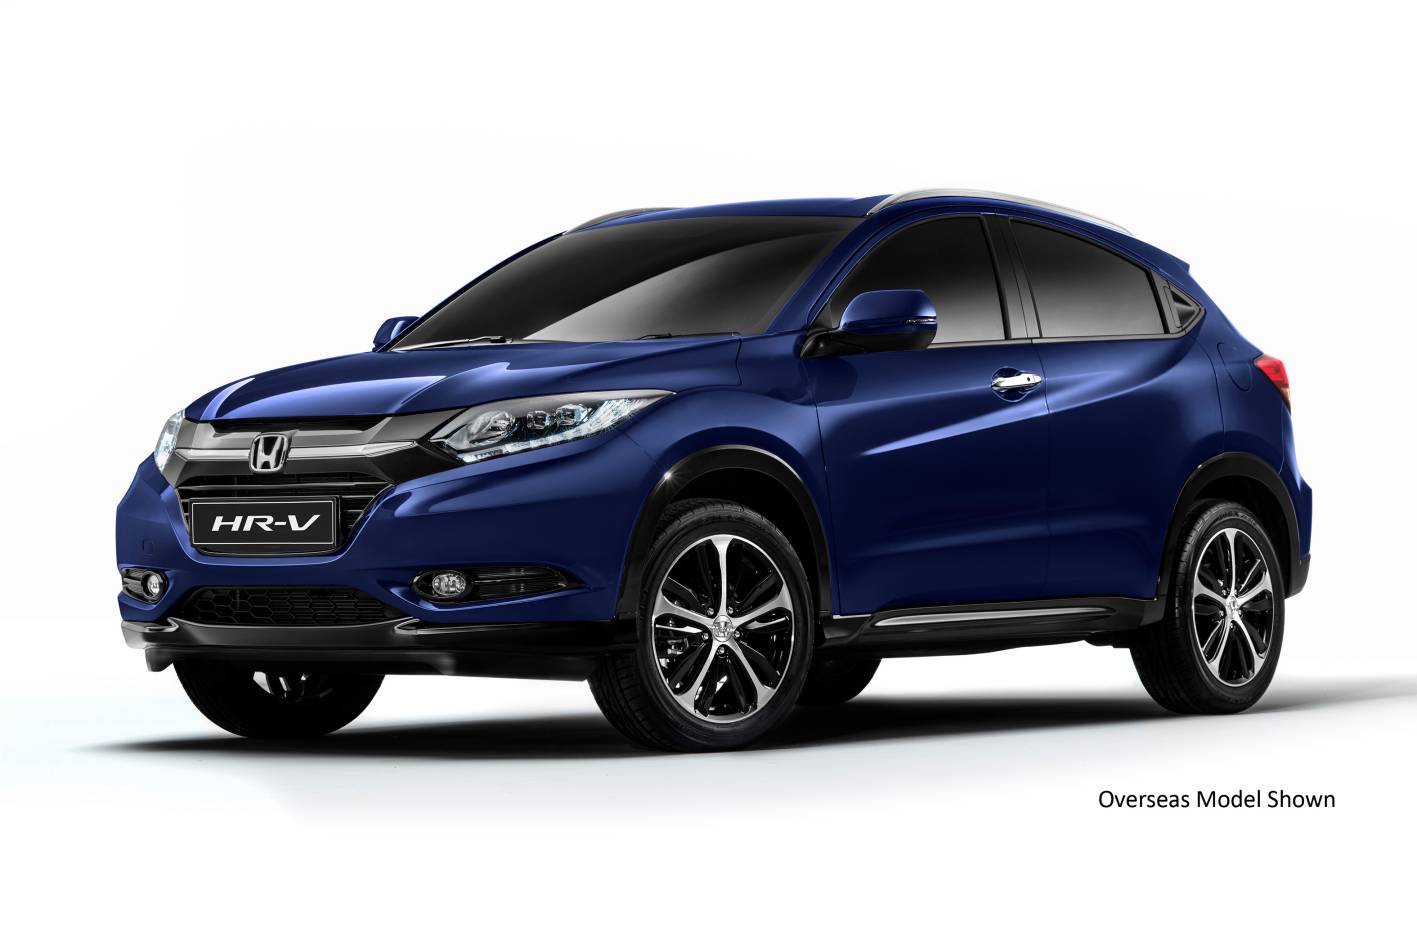 honda hr v compact crossover arriving february 2015. Black Bedroom Furniture Sets. Home Design Ideas